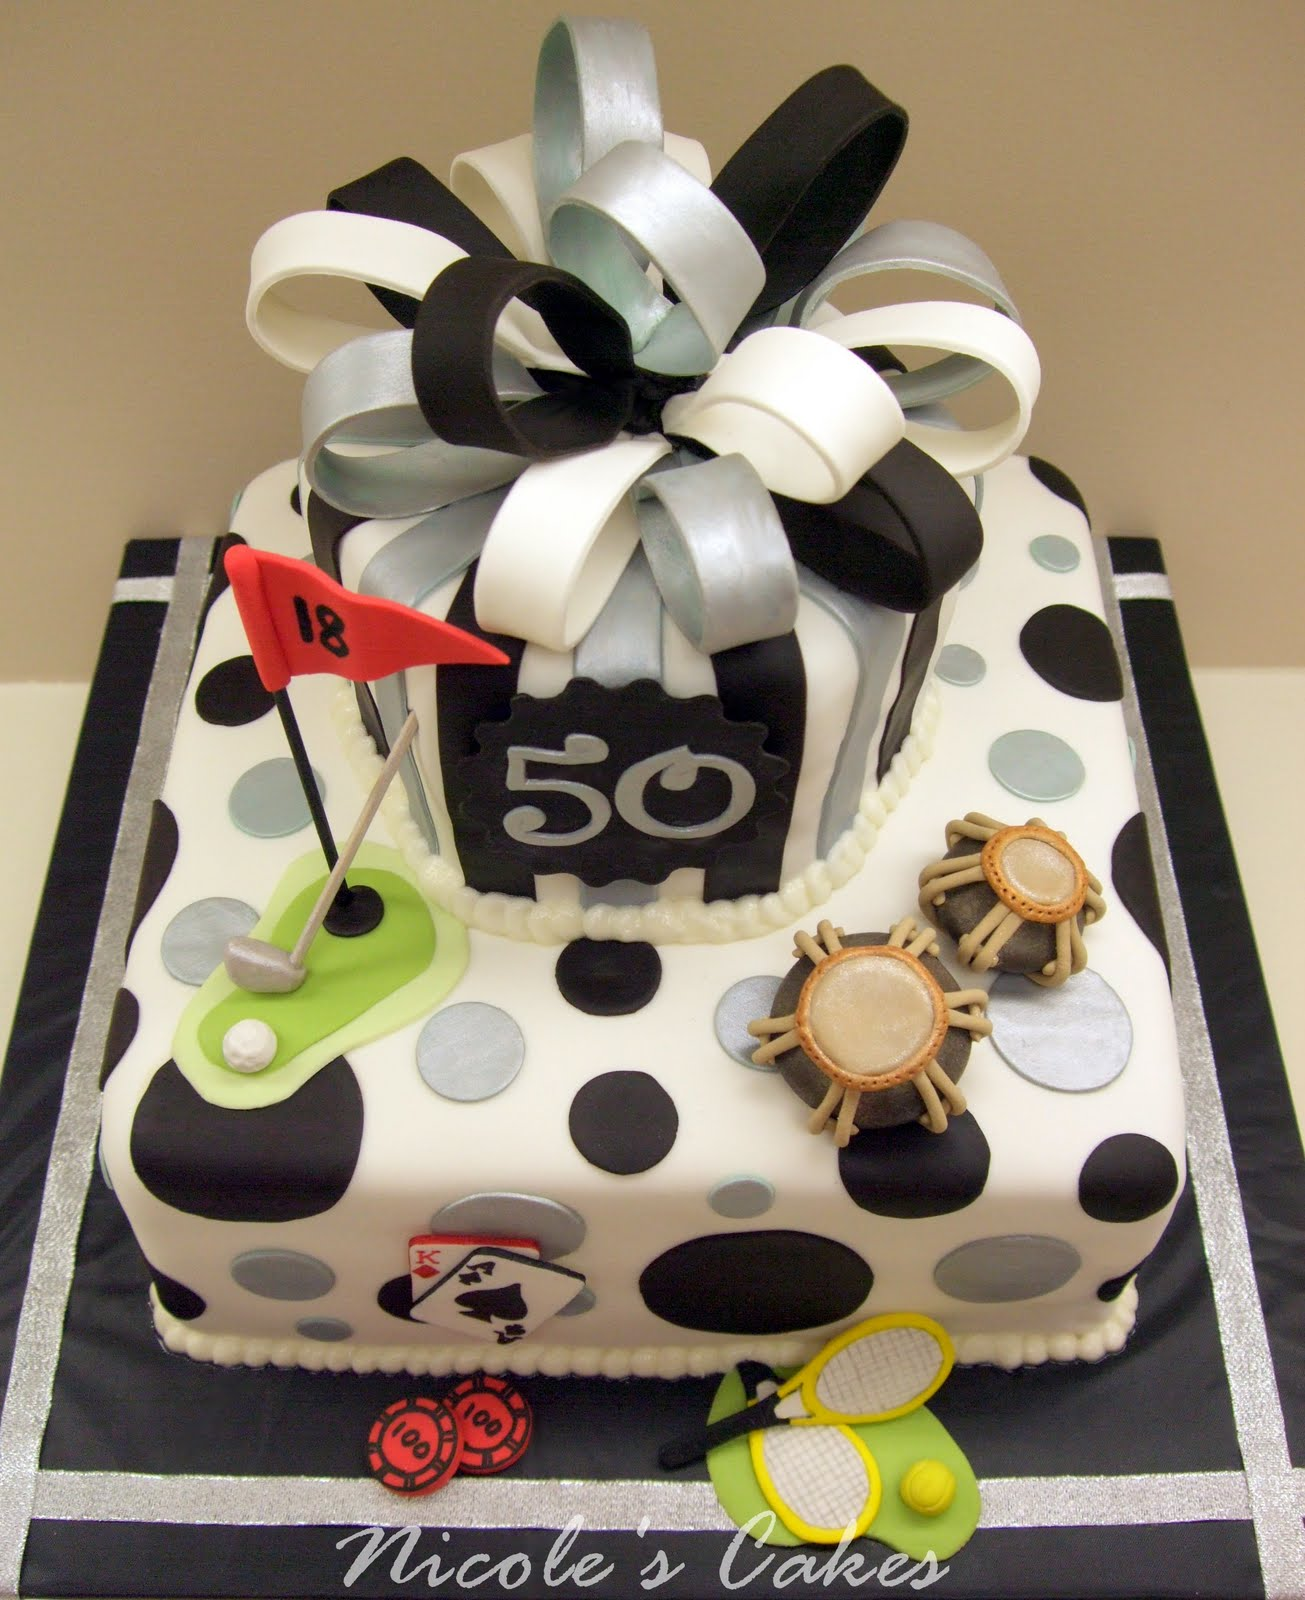 Confections Cakes Amp Creations Favorite Things A